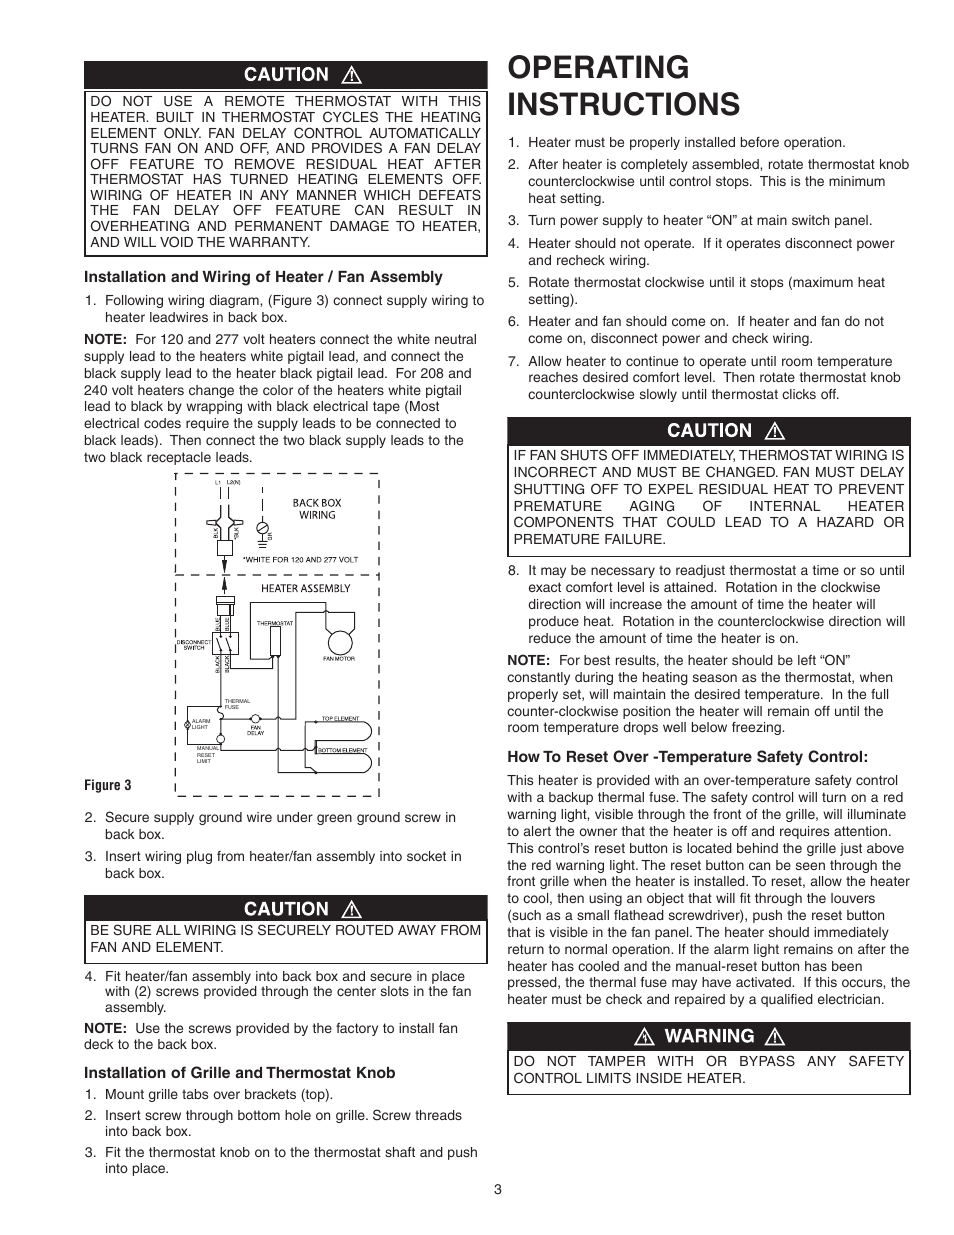 Operating Instructions Qmark Cwh1000 Series Small Room Fan Wall Furnace Thermostat Wiring Forced Heaters User Manual